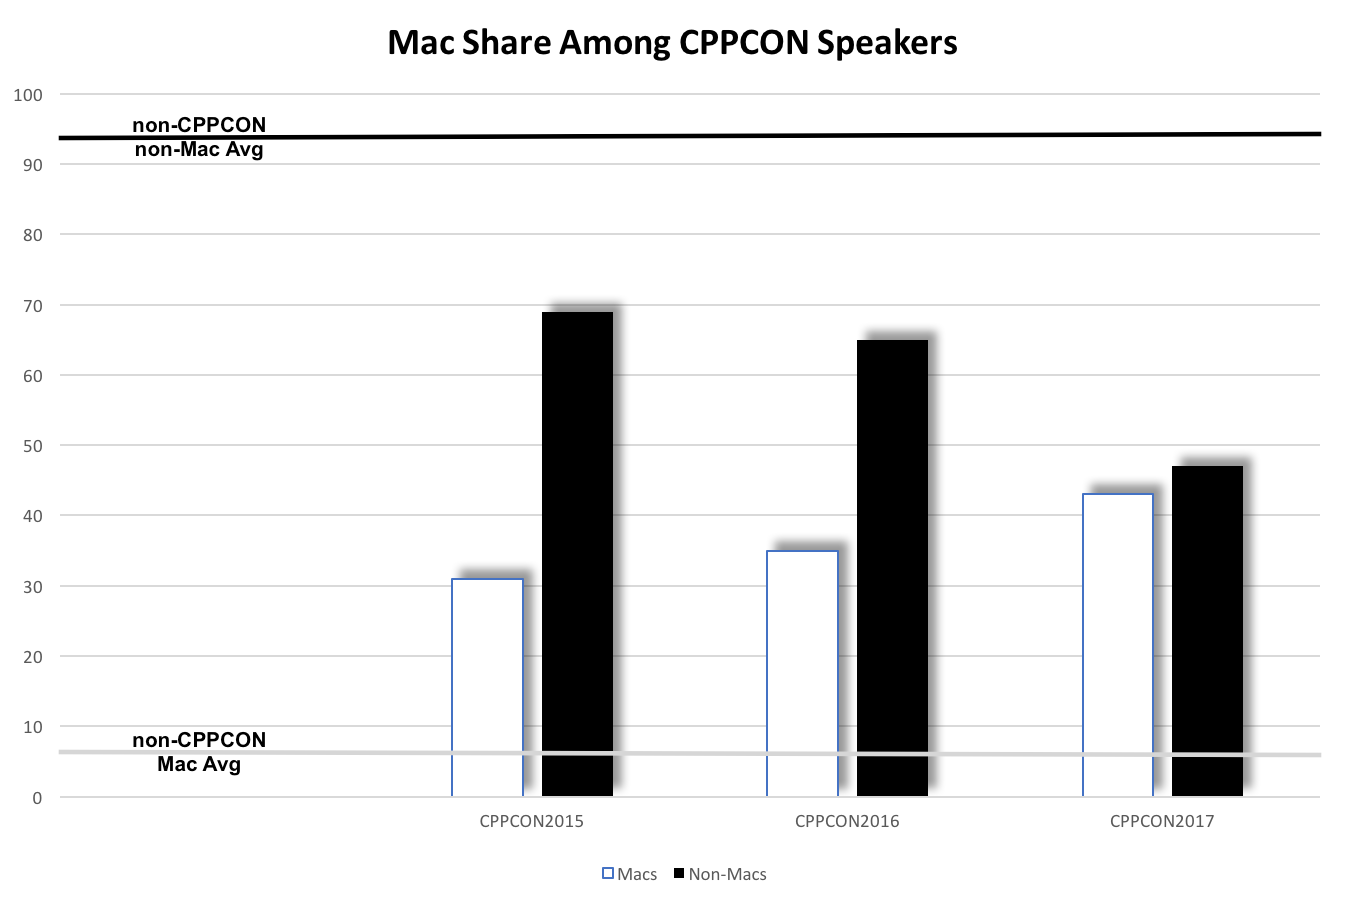 Mac Share Among CPPCON Speakers